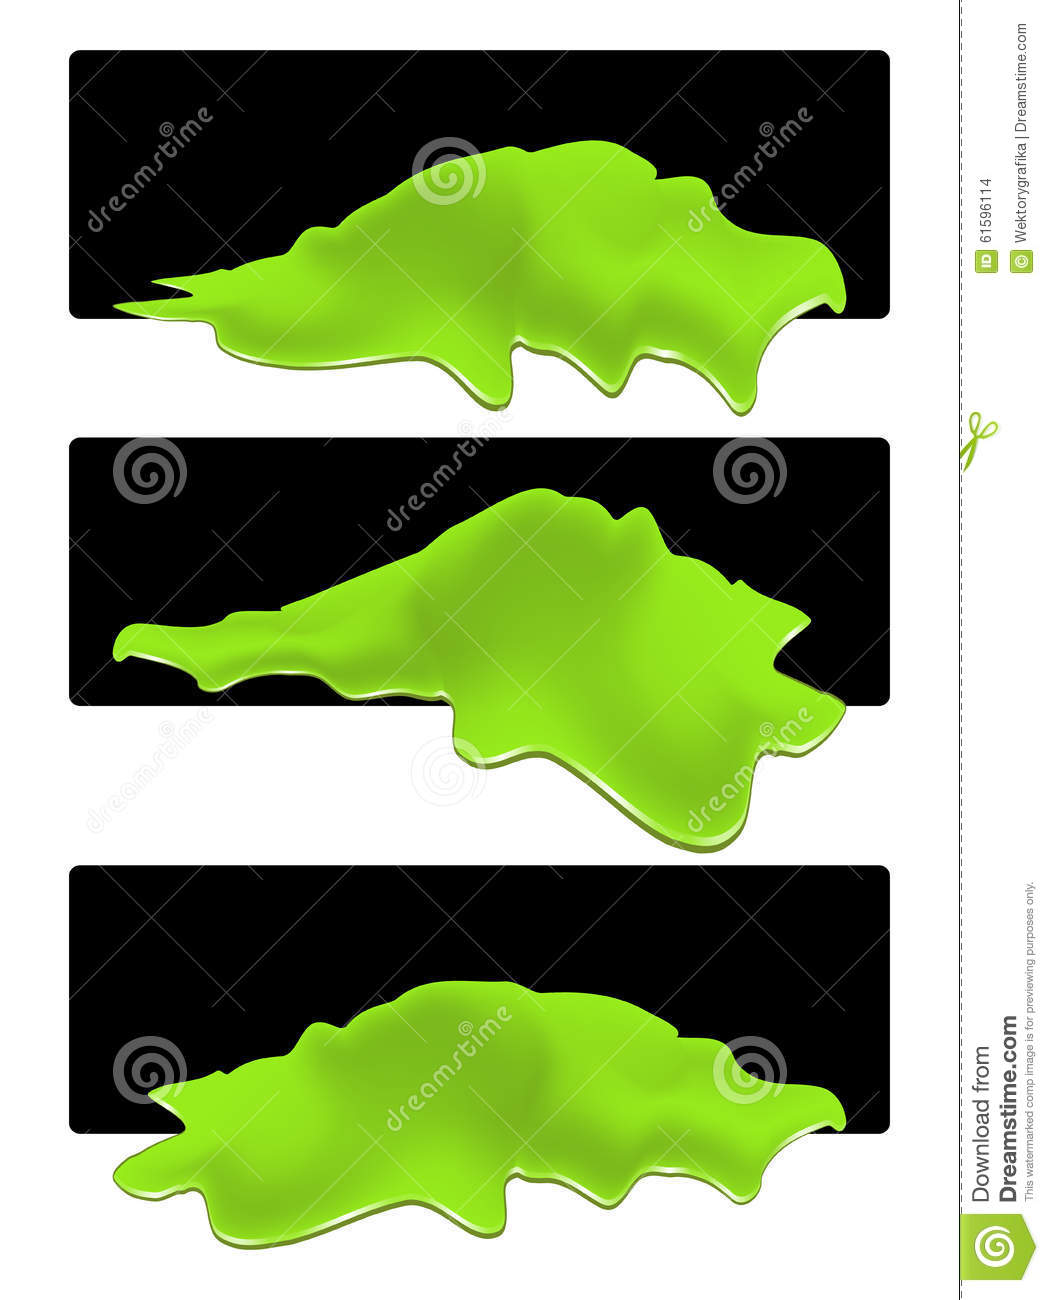 Puddle Of Toxic Spill Web Banner. Green Chemical Stain, Plash ...